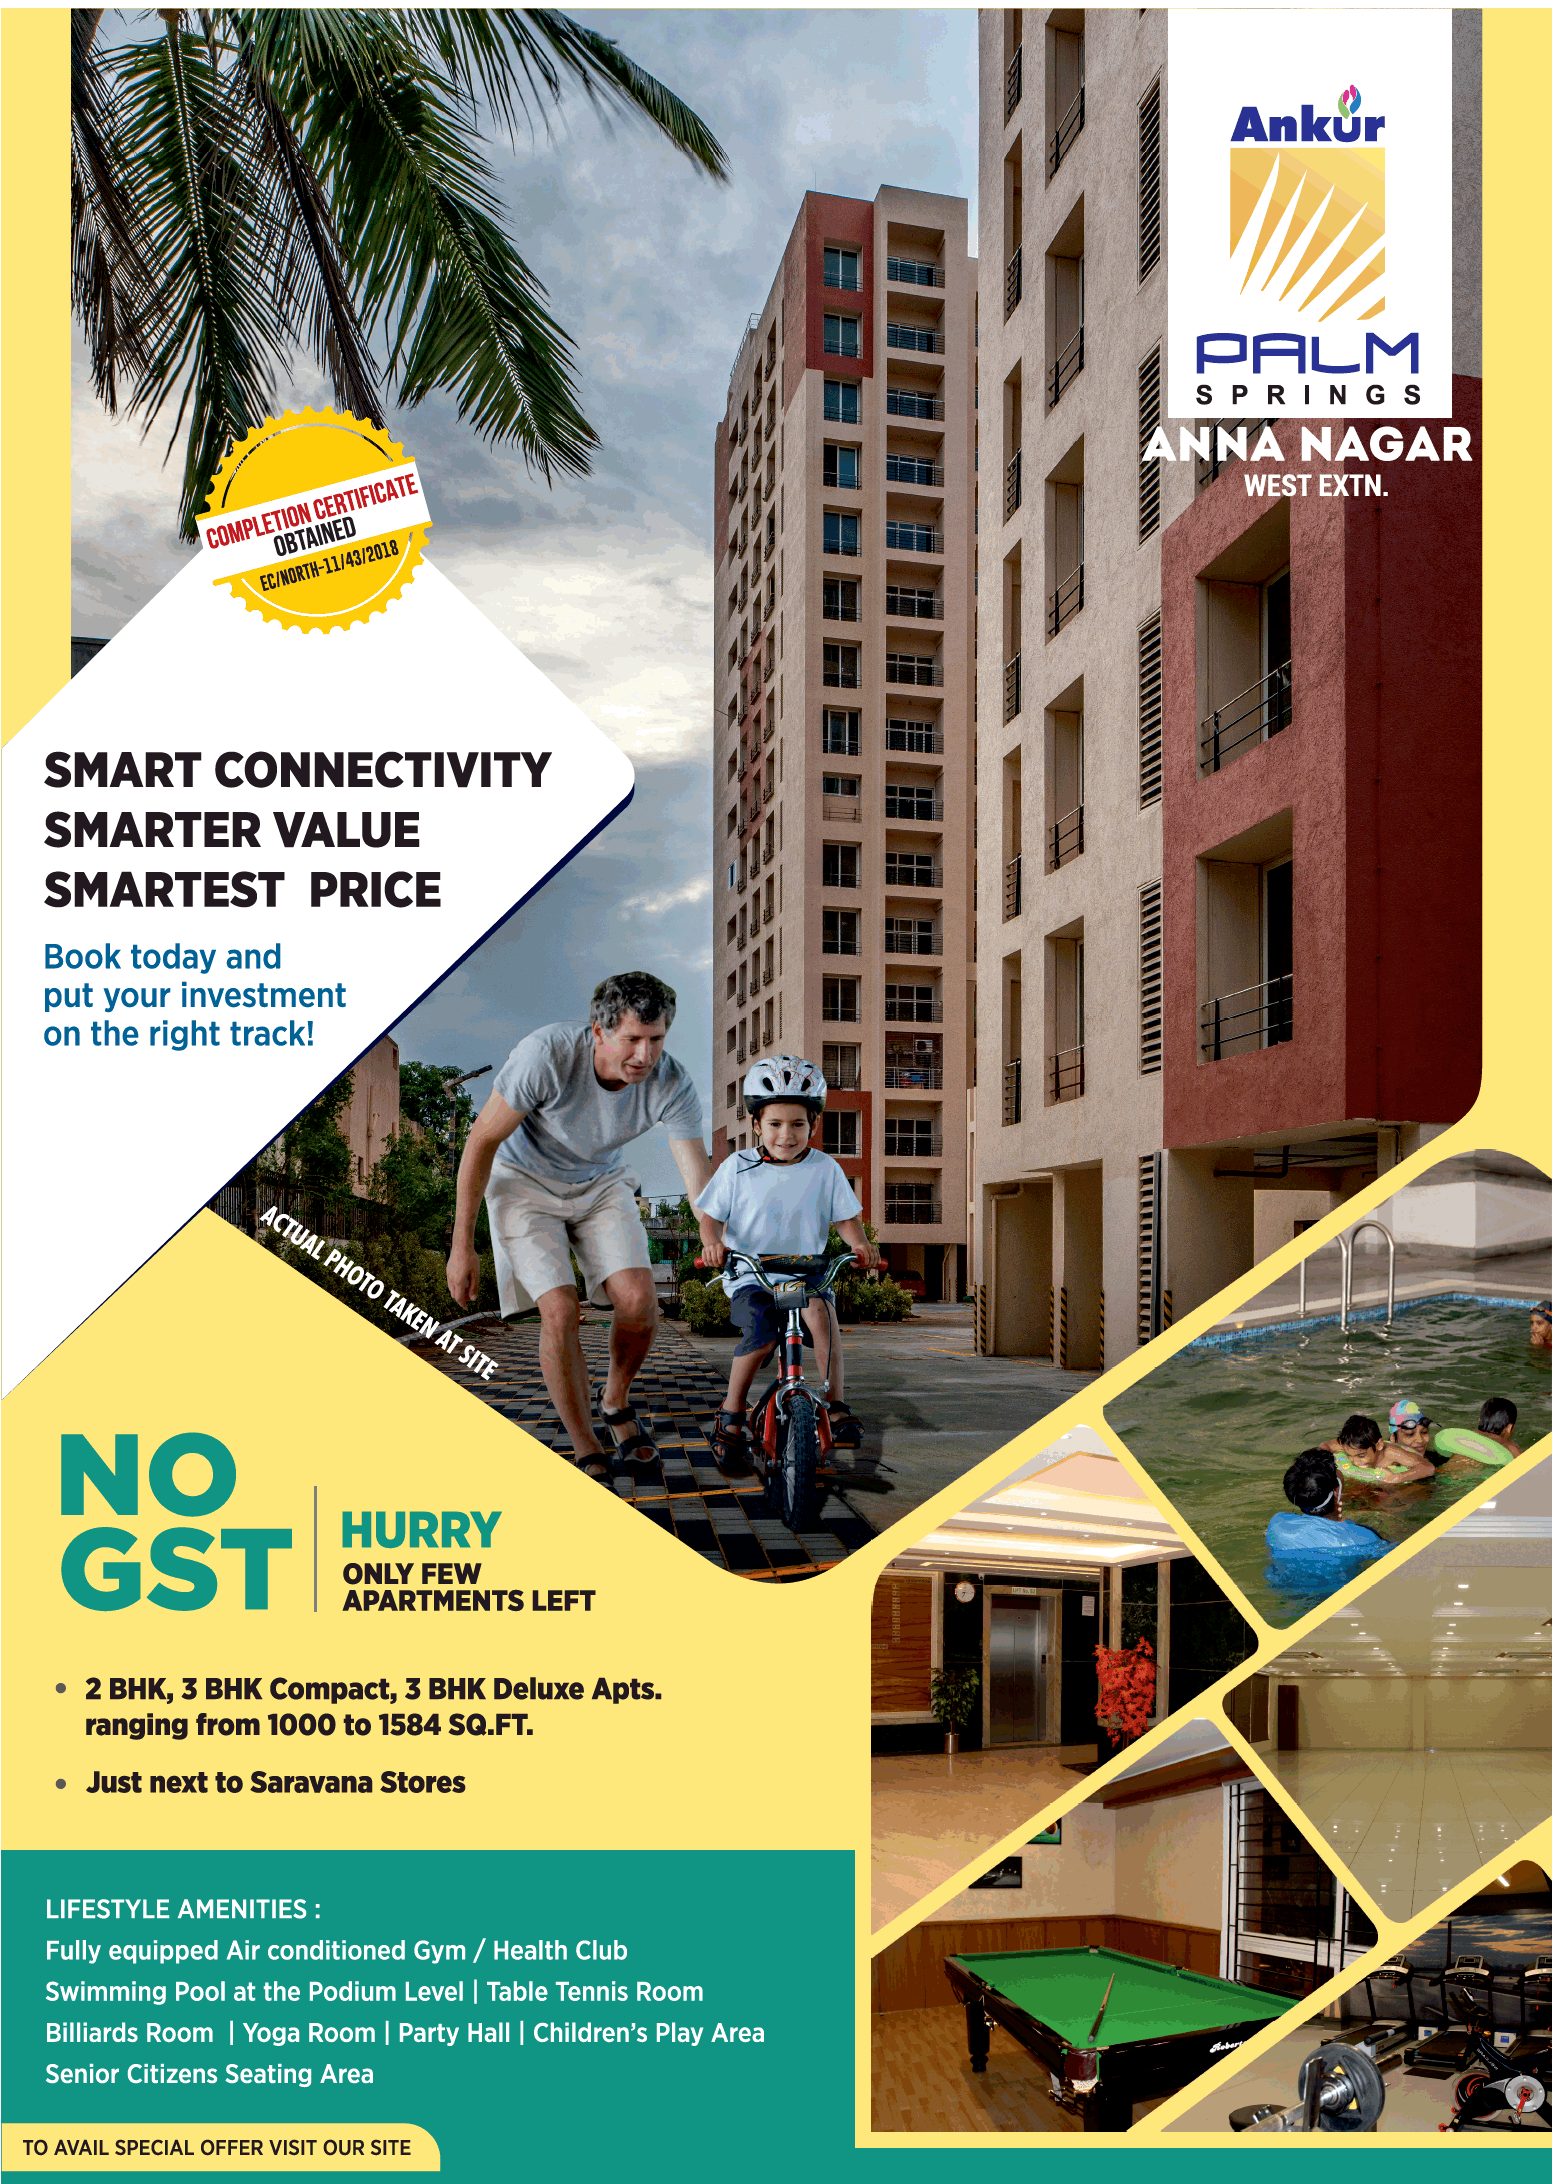 Book today an apartment and put your investment on the right track at Ankur Palm Spring Chennai